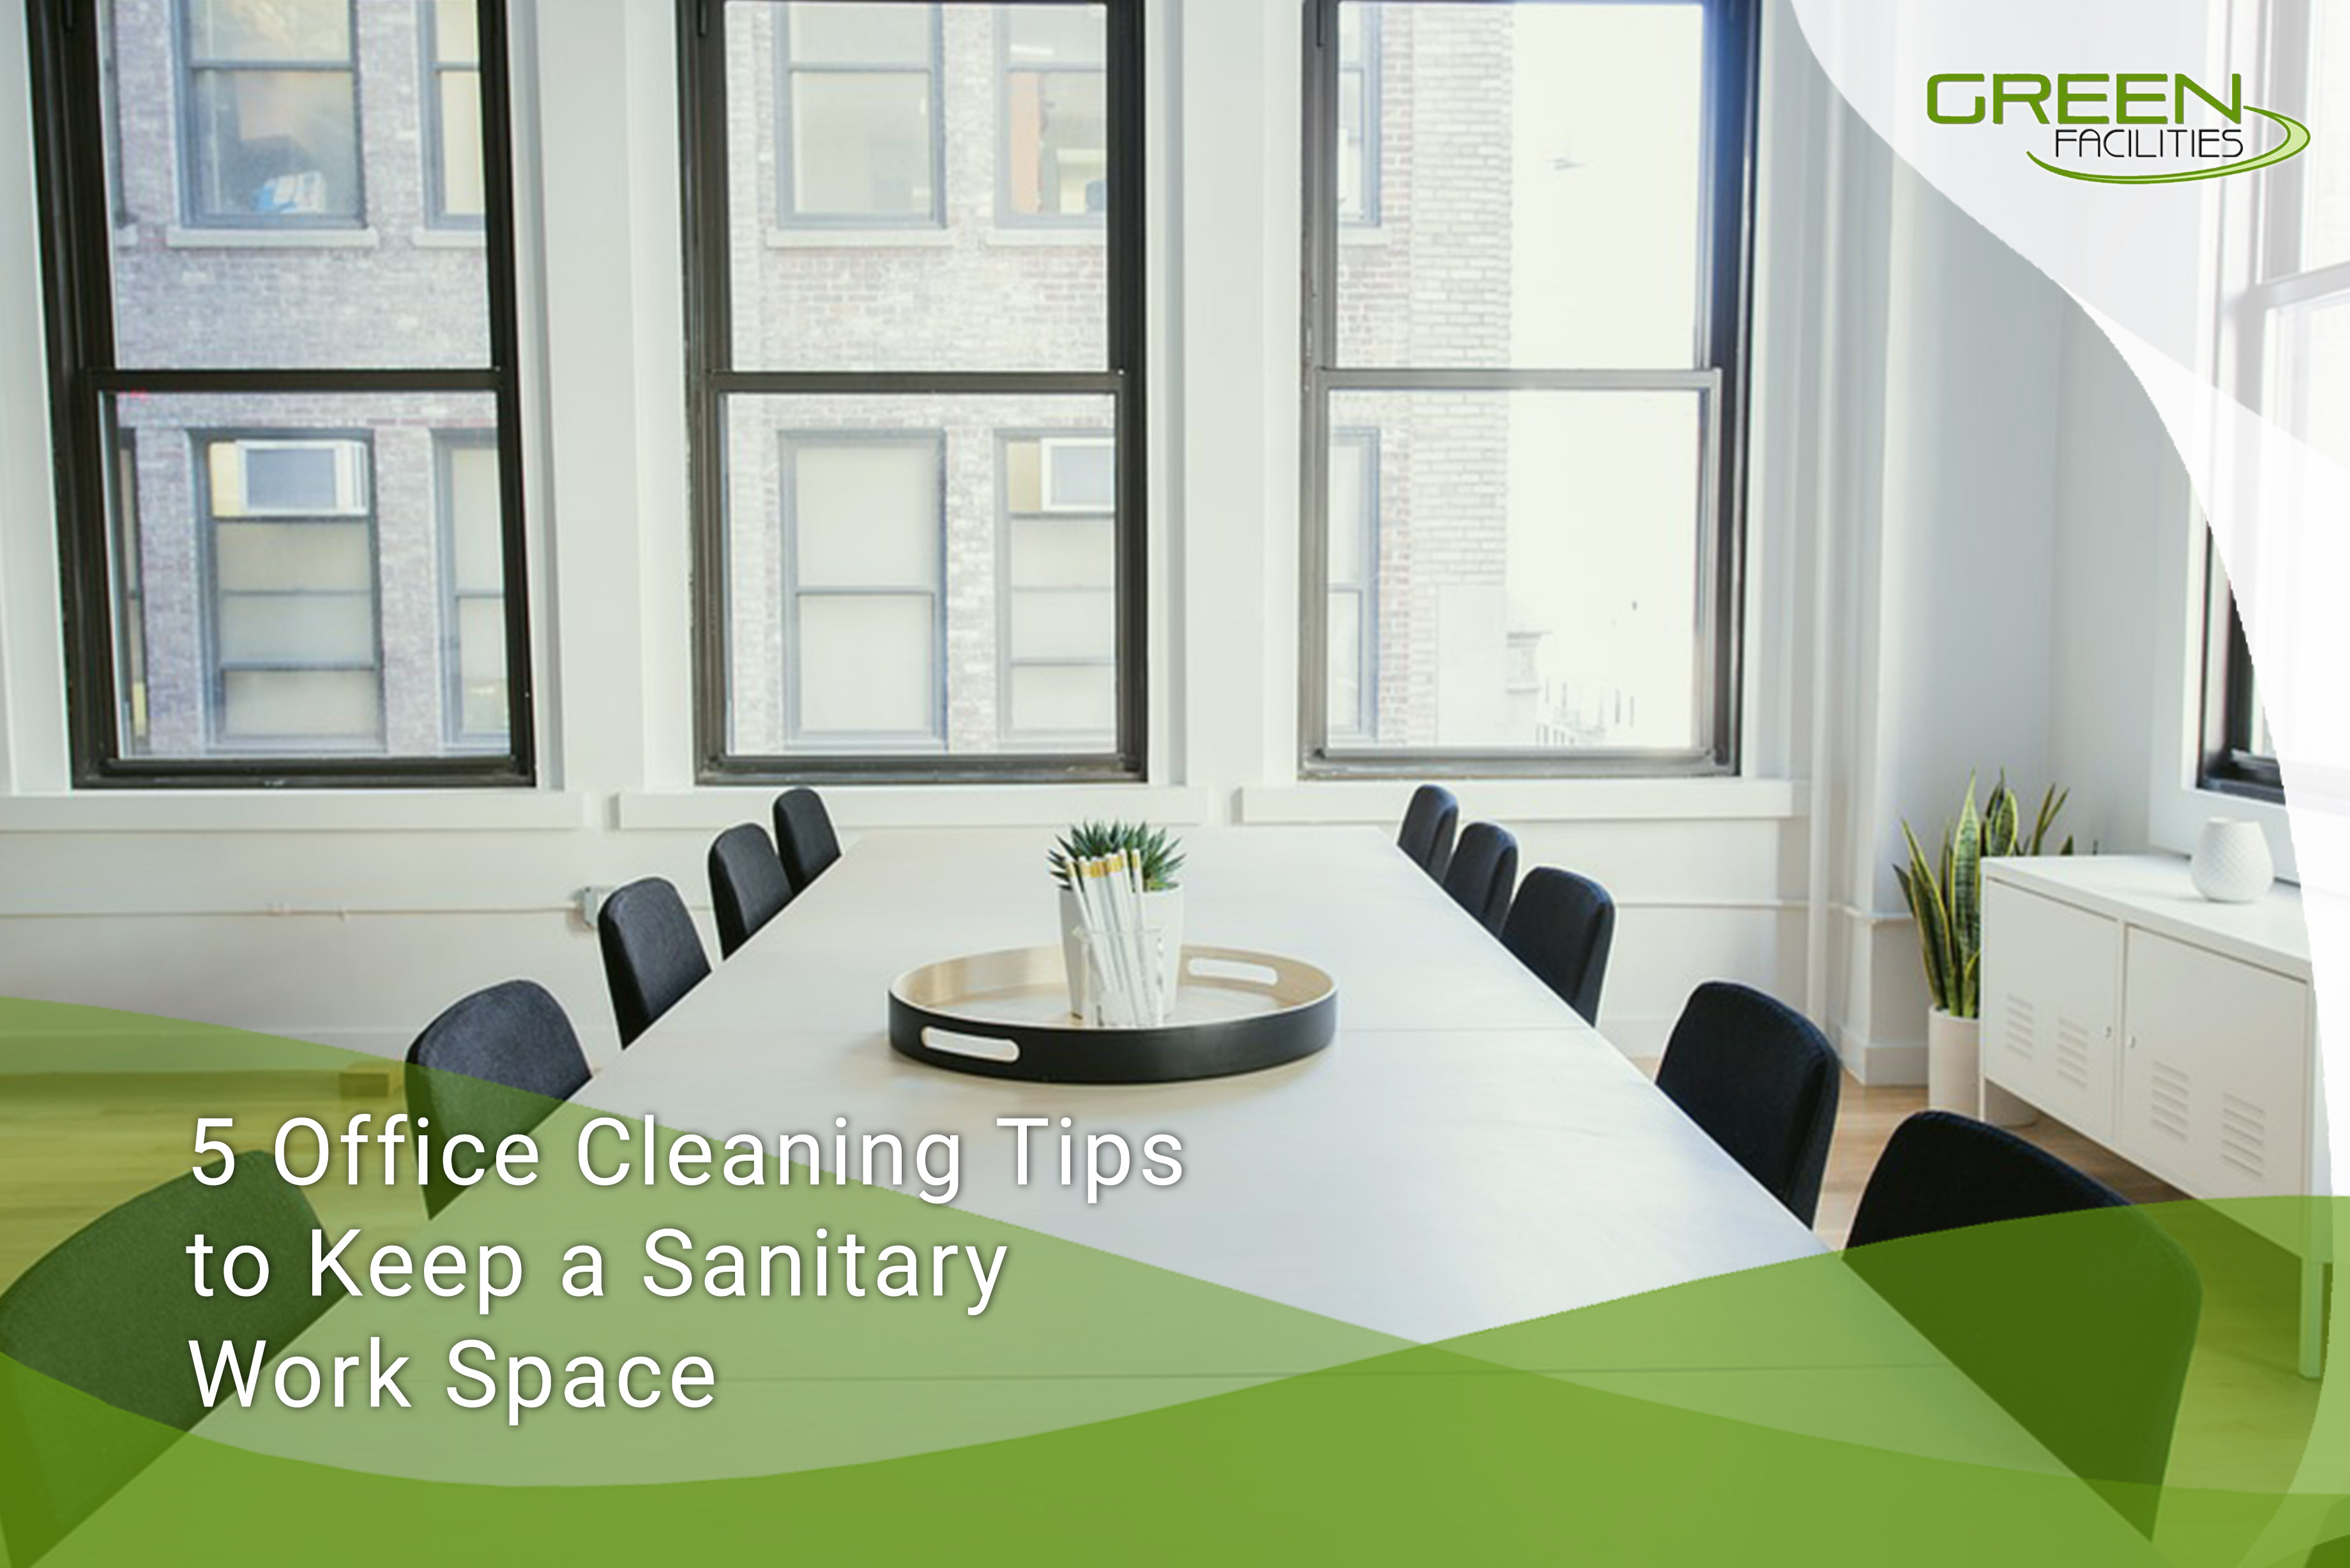 5 Office Cleaning Tips to Keep a Sanitary Work Space